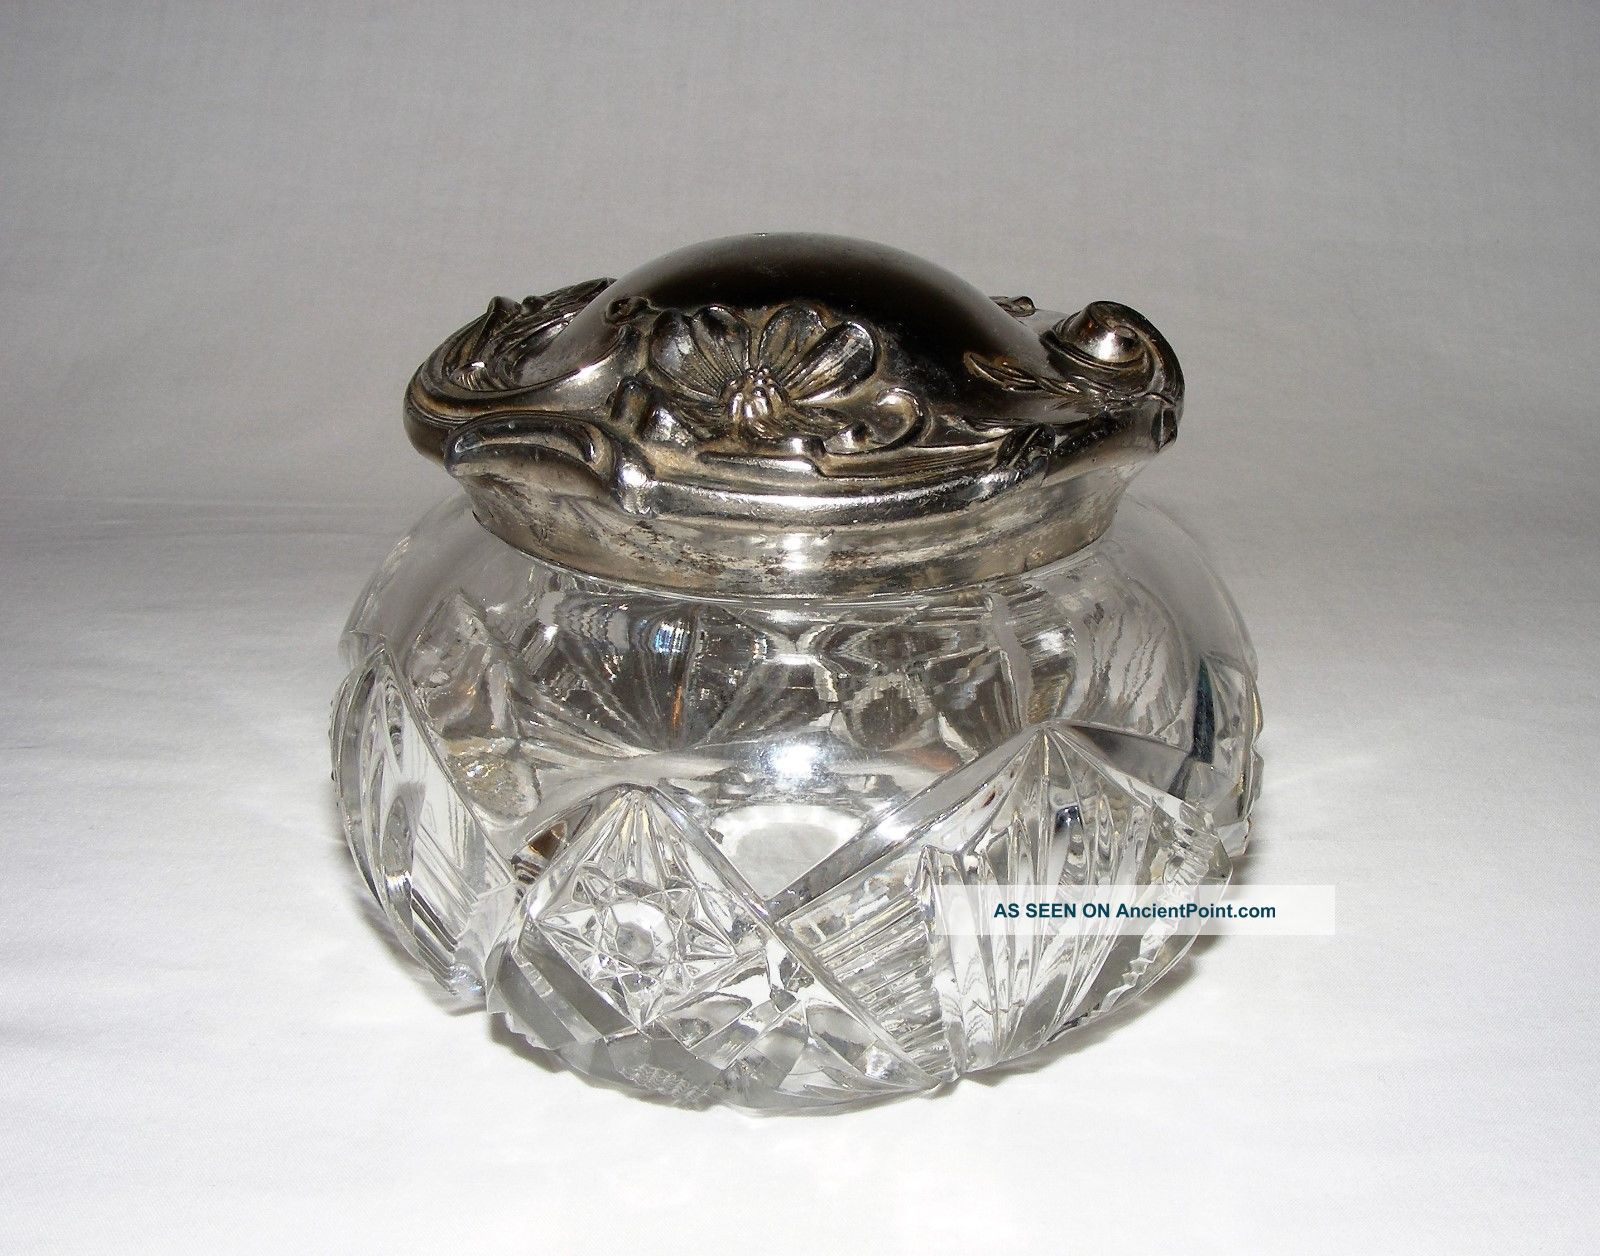 Antique Edwardian Art Nouveau Cut Glass Jewelry Boudoir Trinket Box Silver Lid Art Nouveau photo